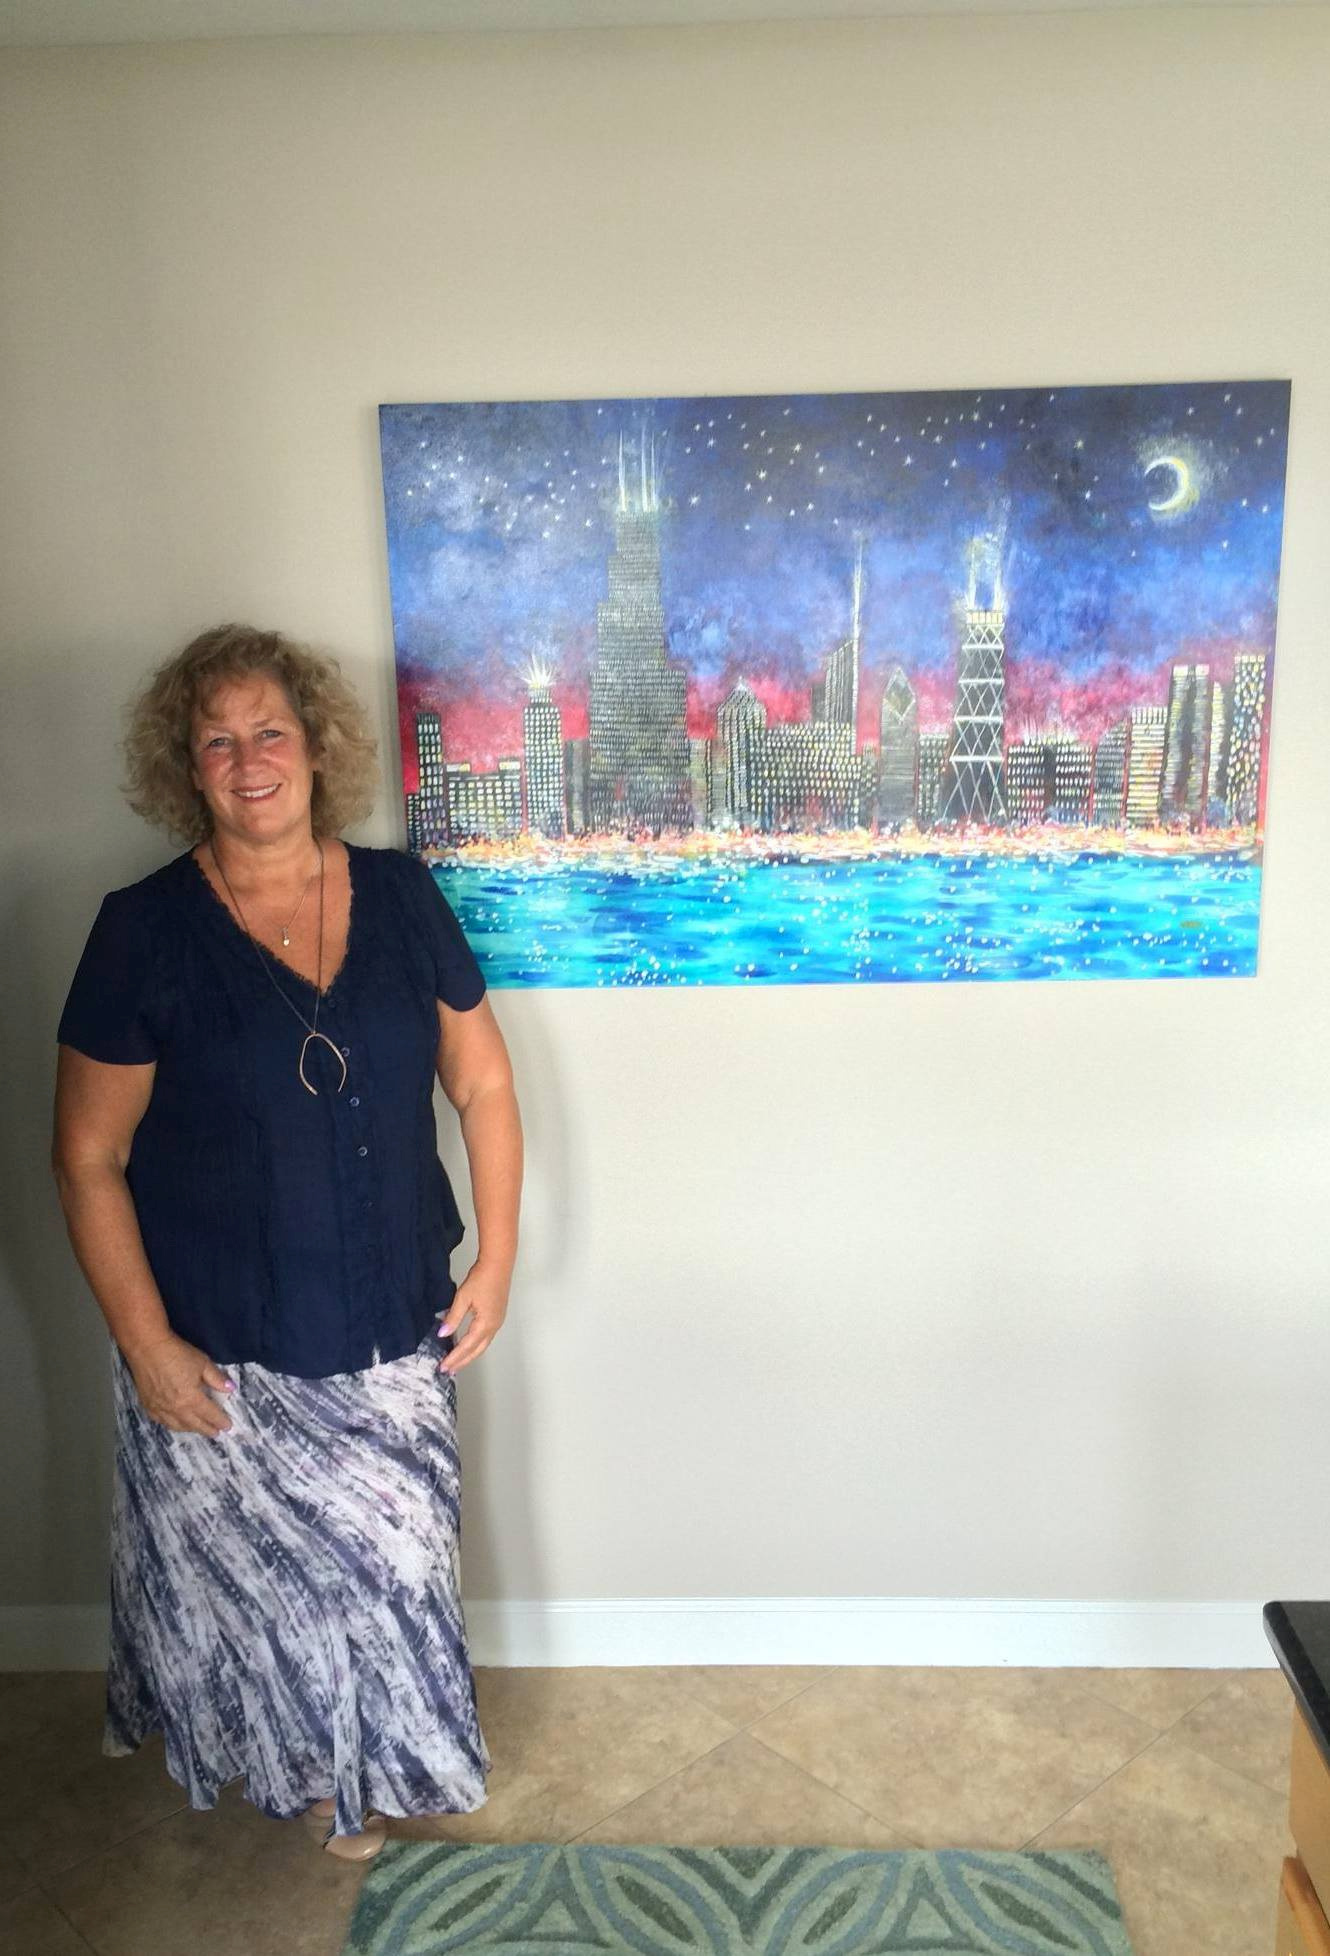 Chicago Skyline Painting in Client's Home